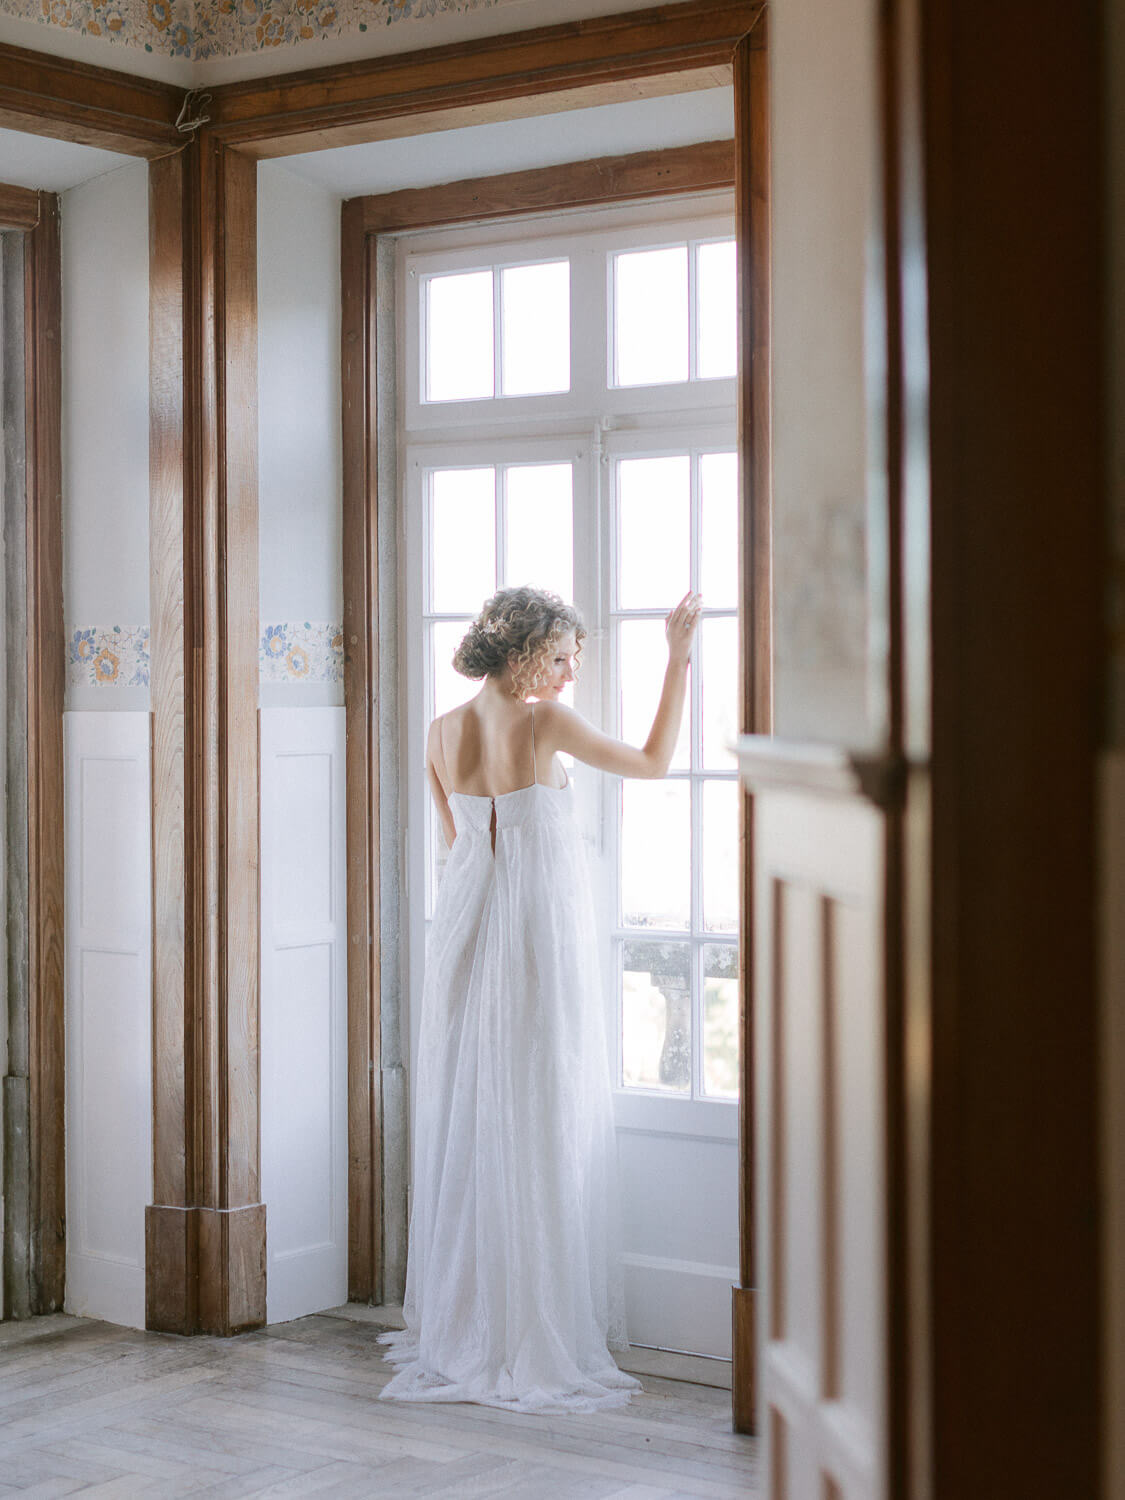 bride romantic portrait by the window in Casa dos Penedos Sintra by Portugal Wedding Photographer